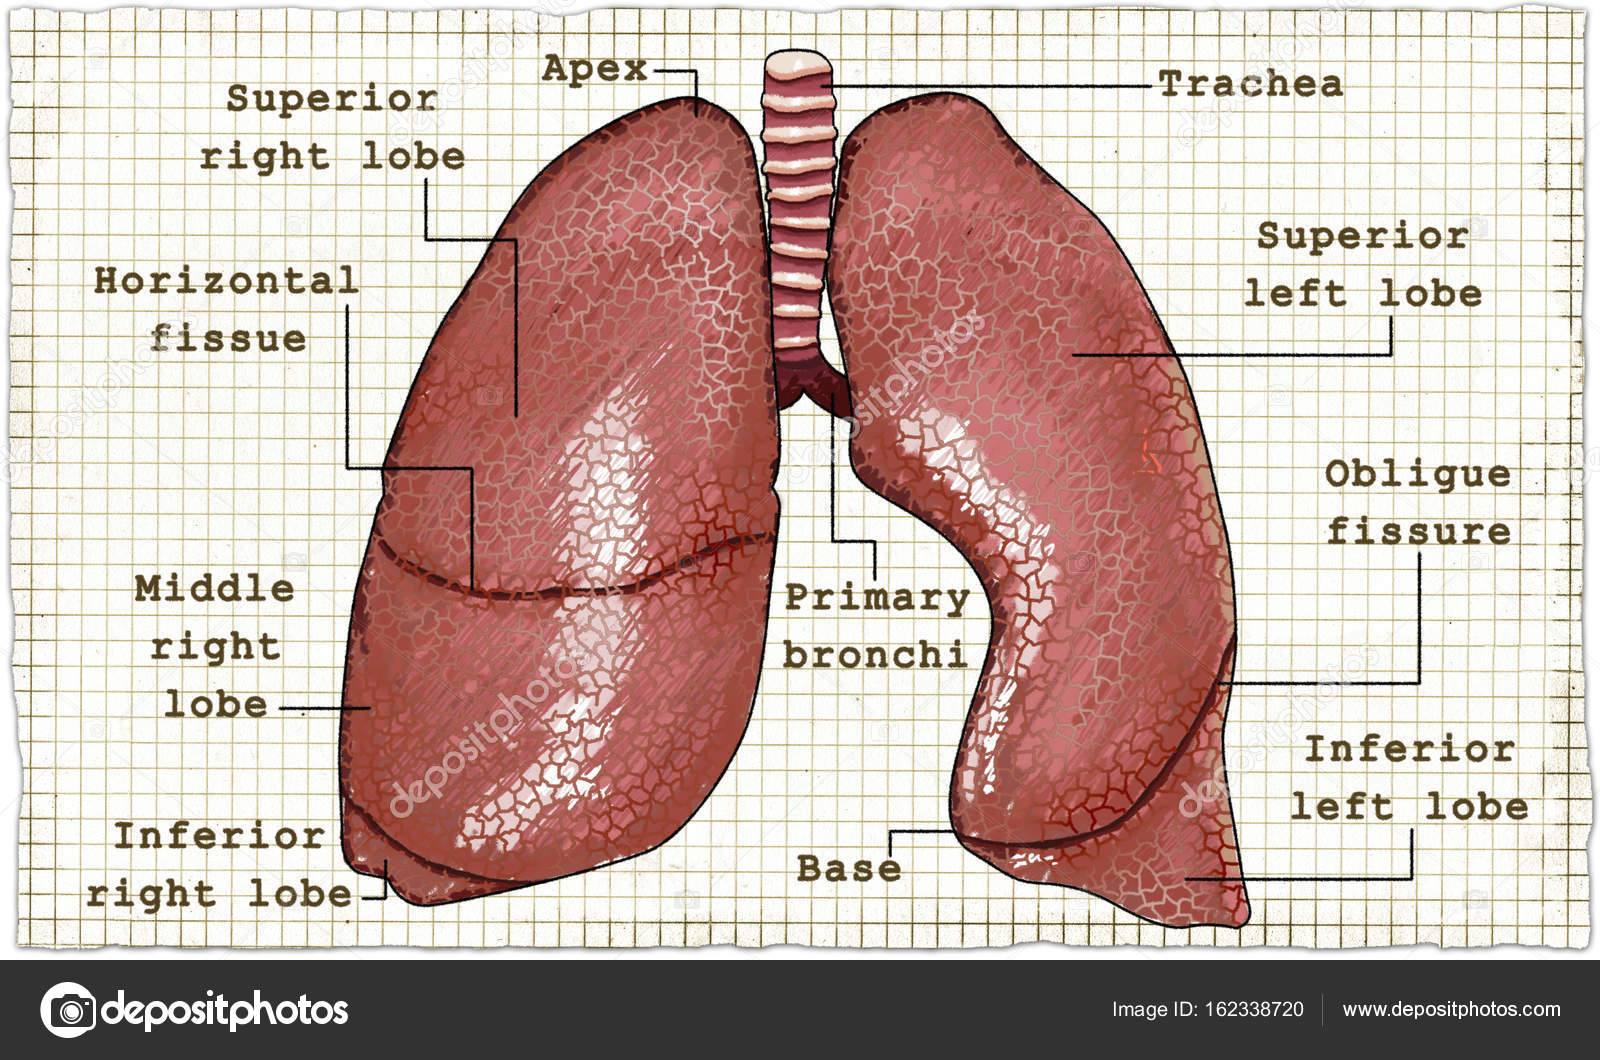 Lungs Anatomy Illustration on Paper — Stock Photo © TLFurrer #162338720